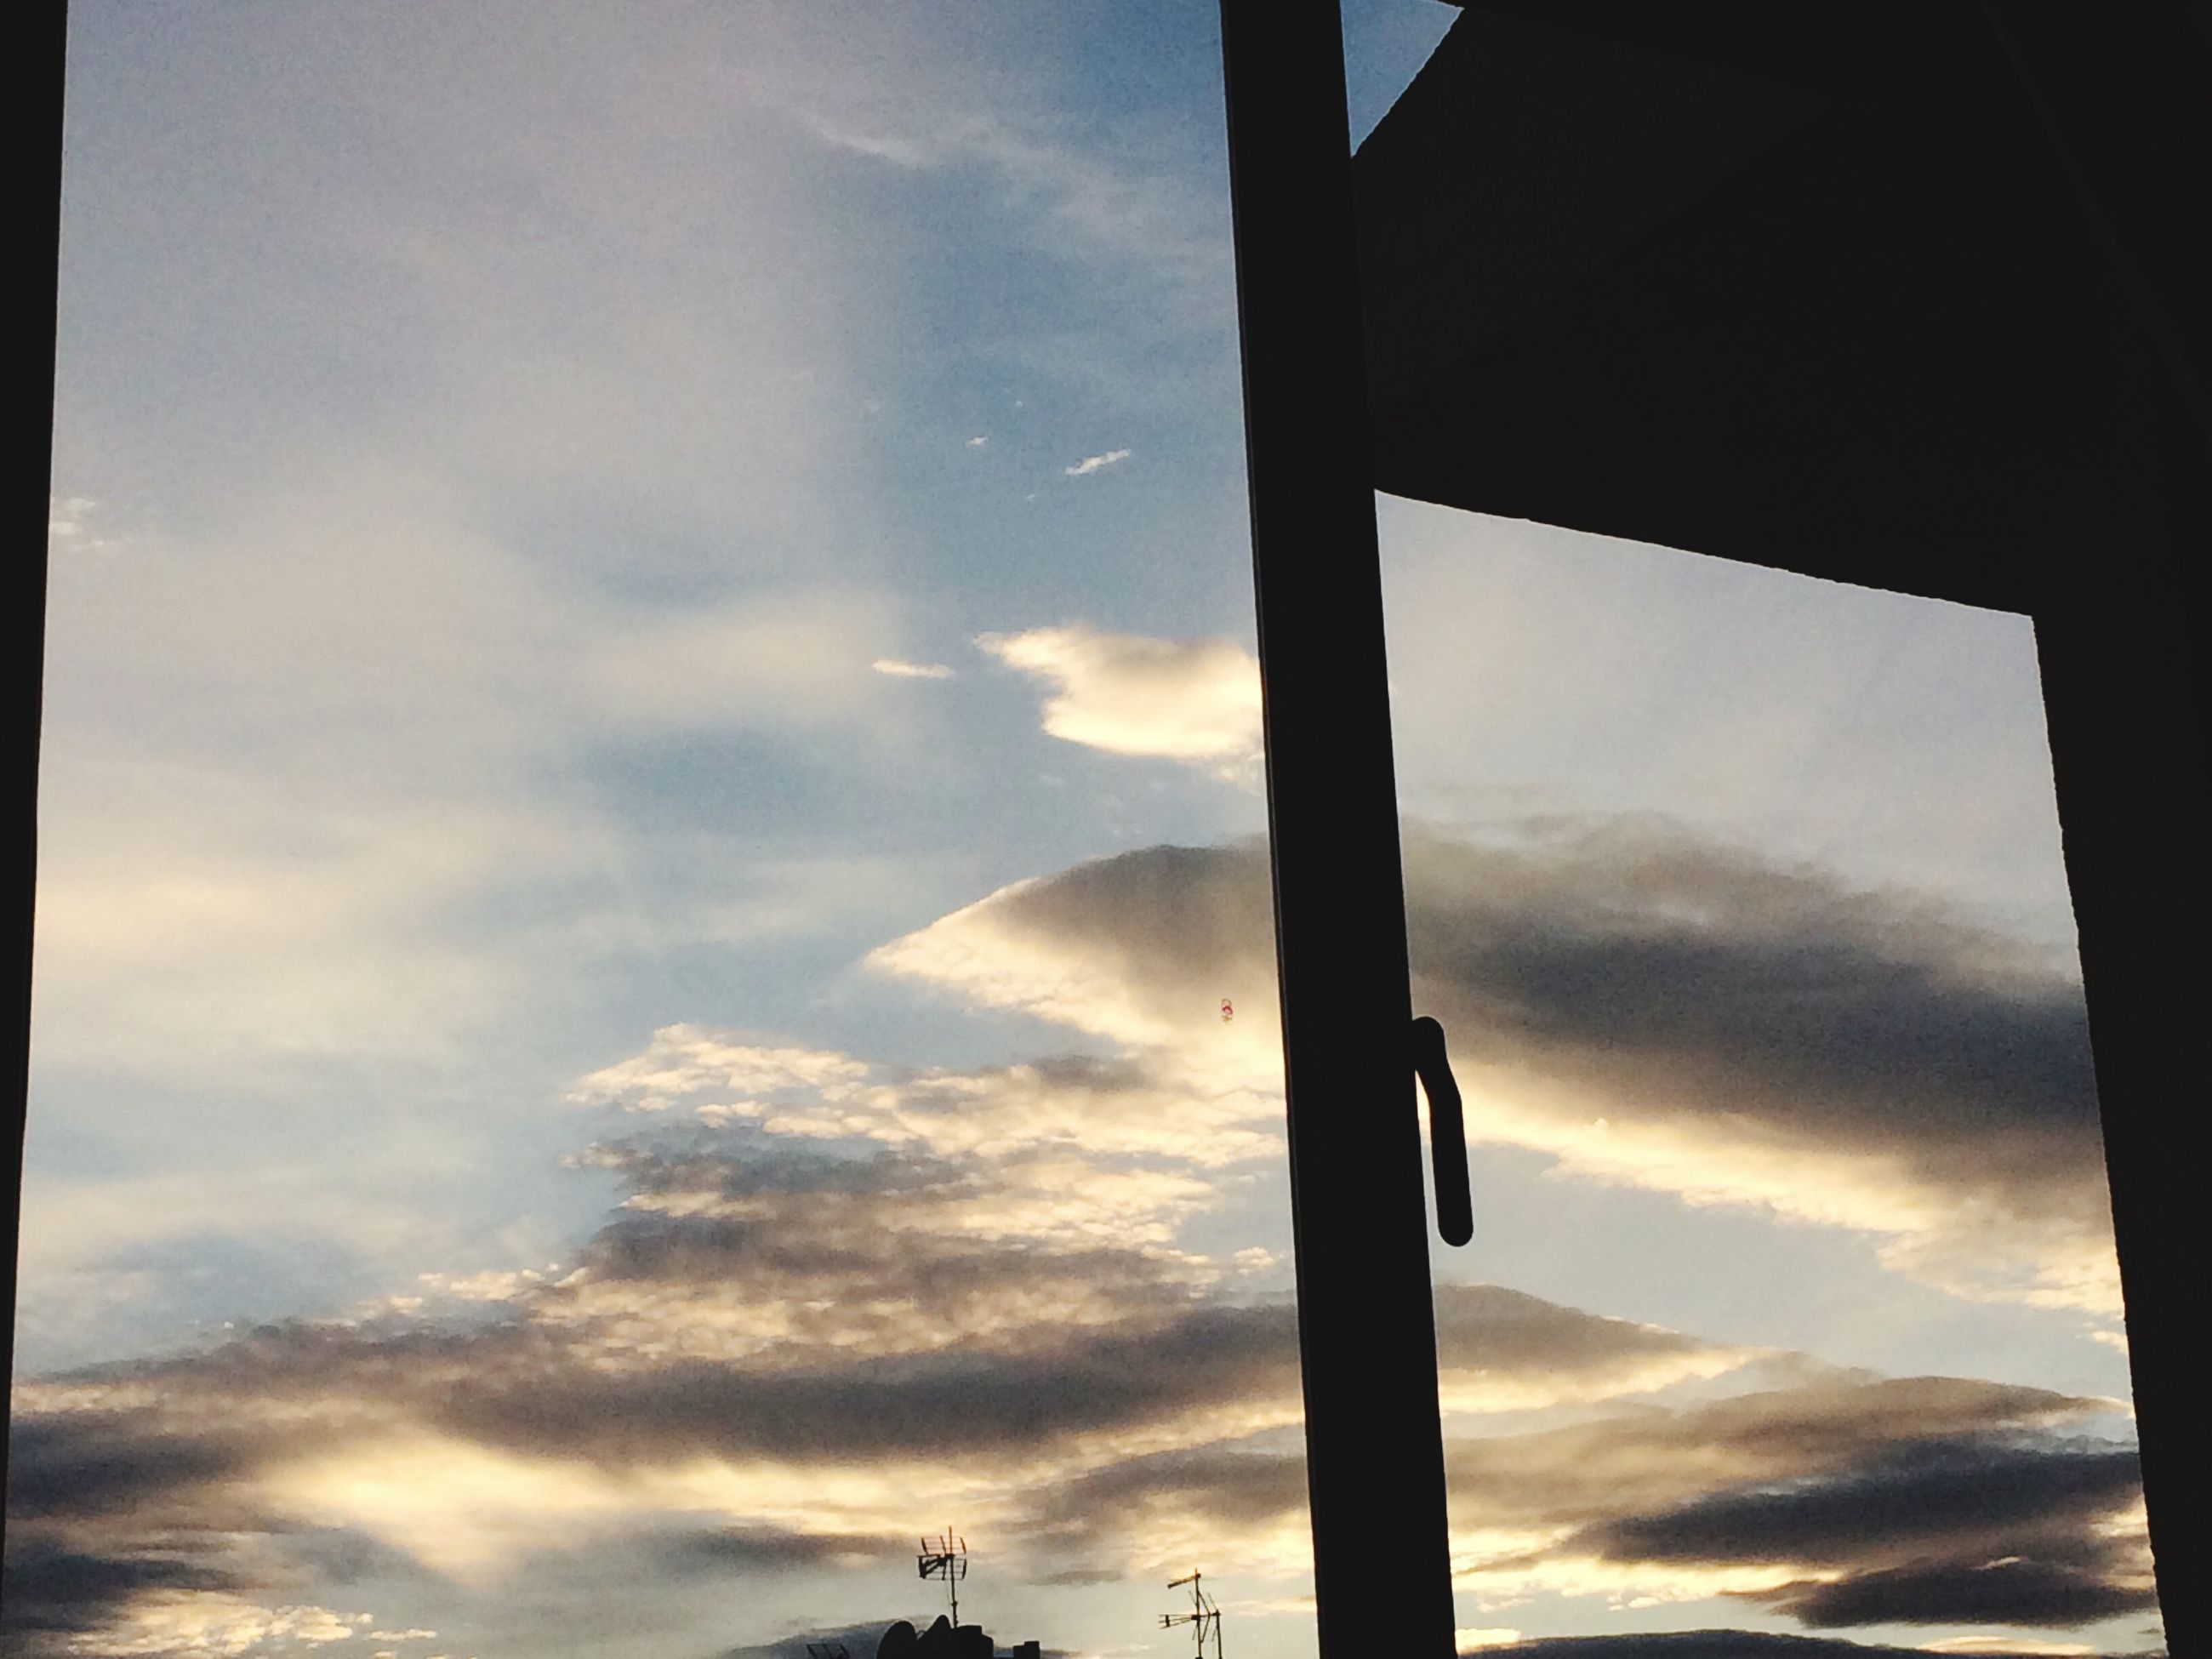 low angle view, sky, cloud - sky, cloudy, silhouette, cloud, built structure, architecture, sunset, street light, no people, pole, outdoors, nature, sunlight, day, overcast, weather, dusk, tranquility